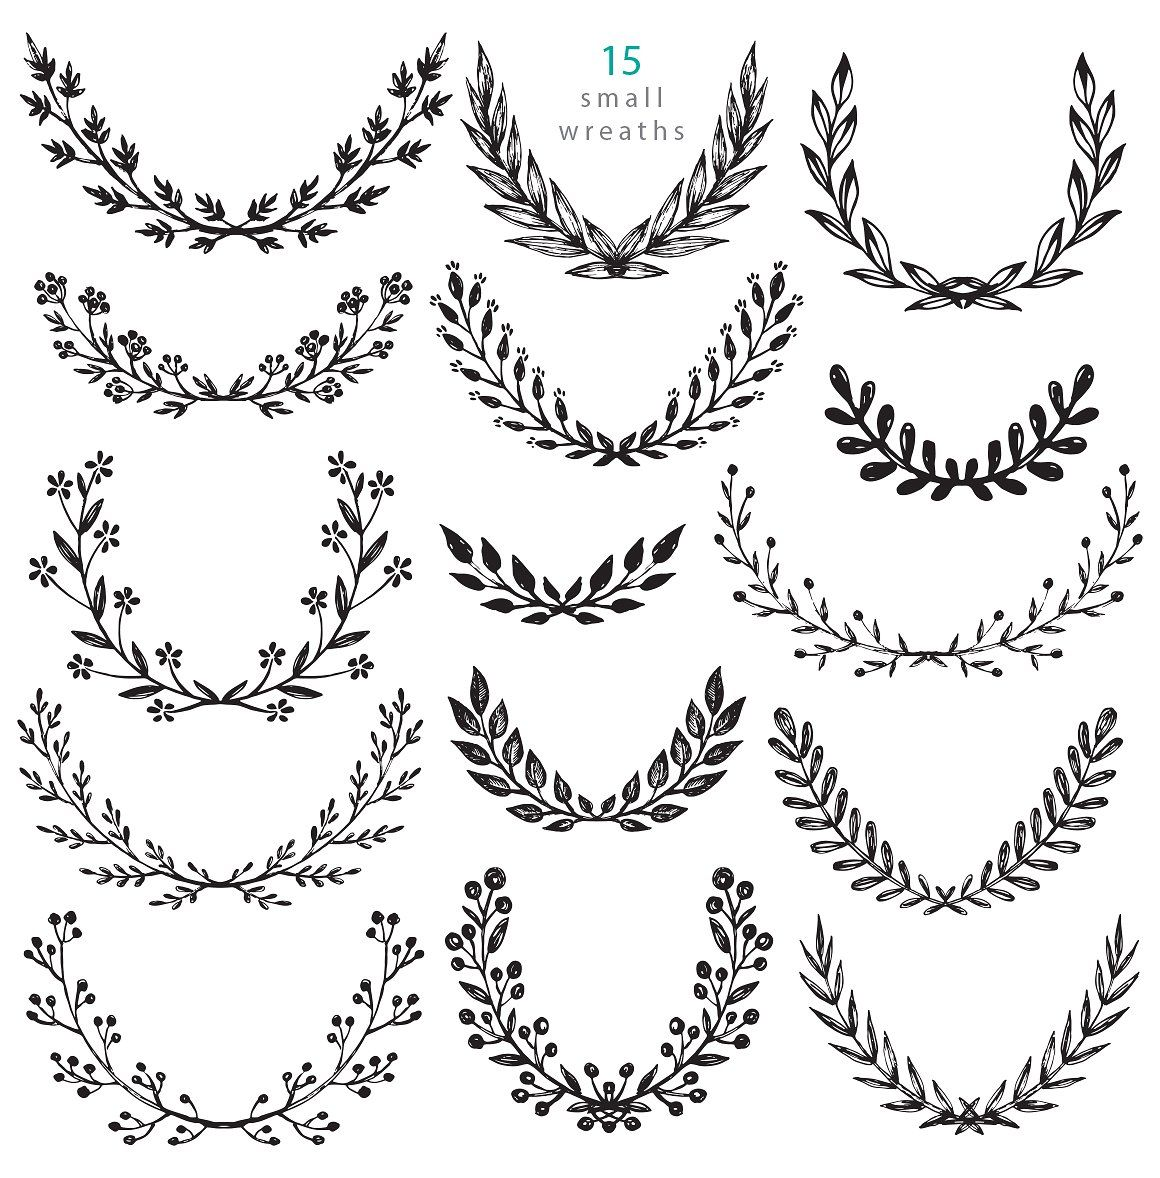 Branches, wreaths, wedding design